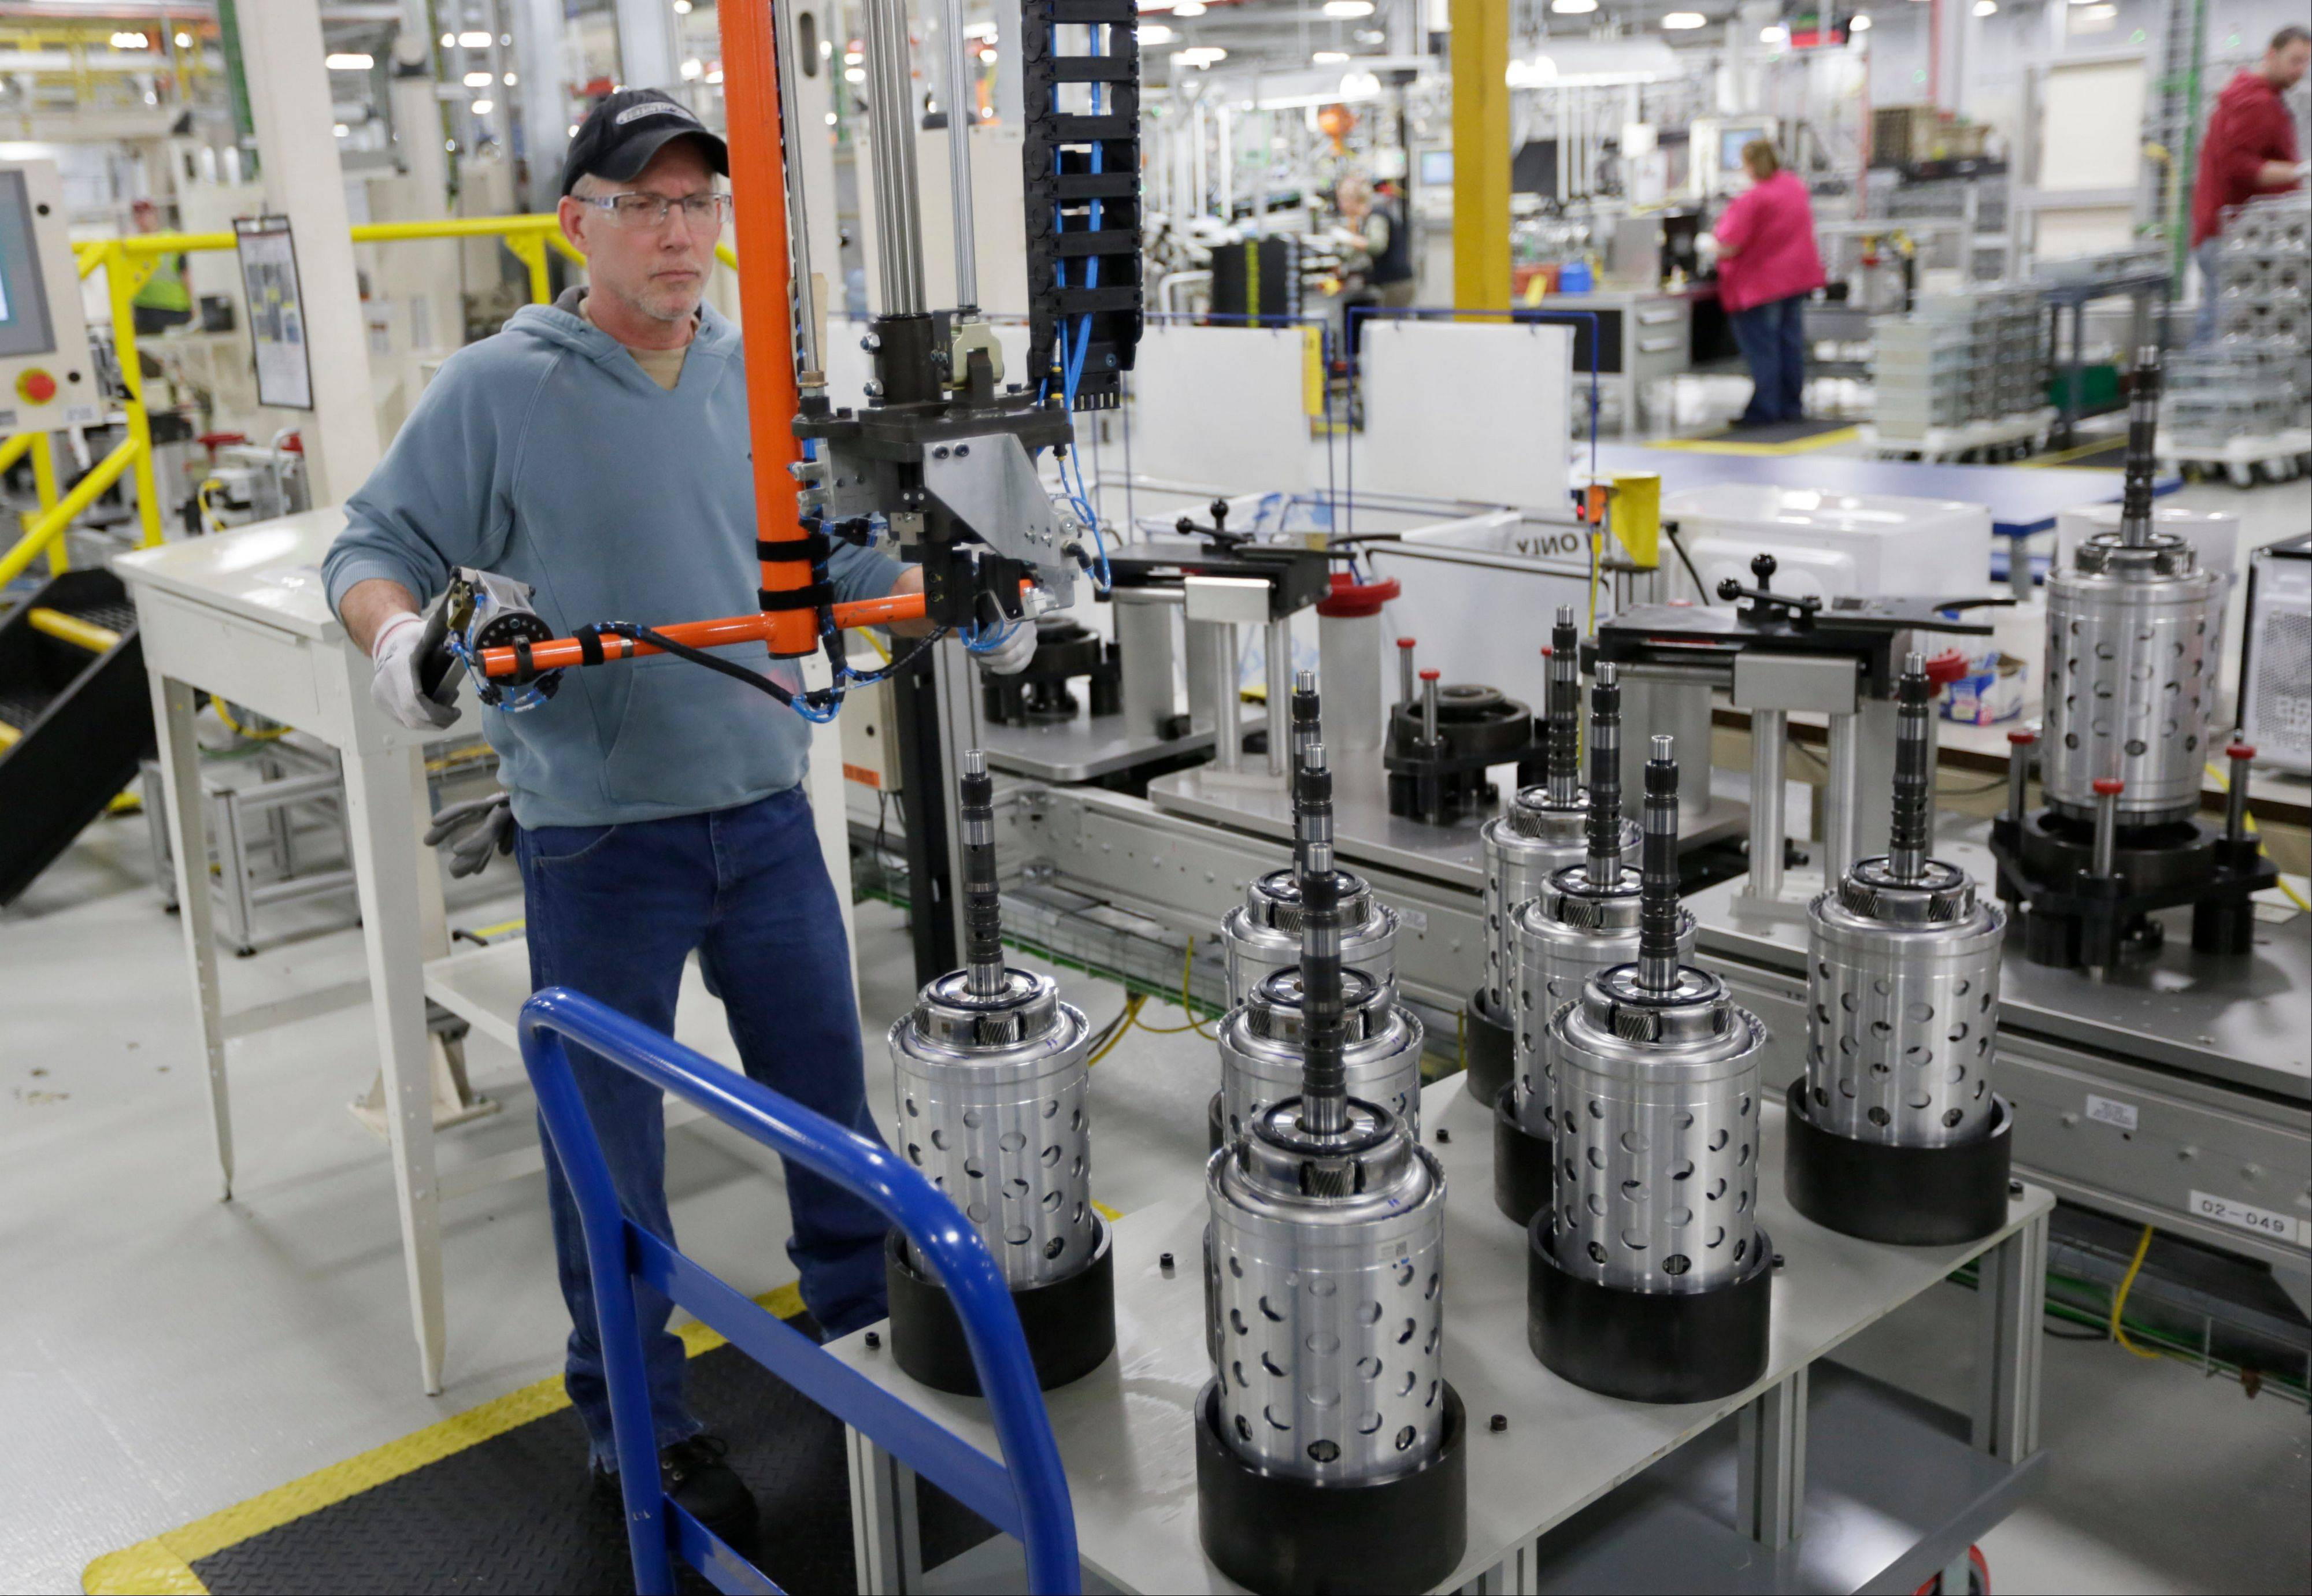 U.S. manufacturing expanded in February at the fastest pace since June 2011, buoyed by increases in new orders and production. The third straight month of growth suggests factories may help the economy this year after slumping through most of 2012.